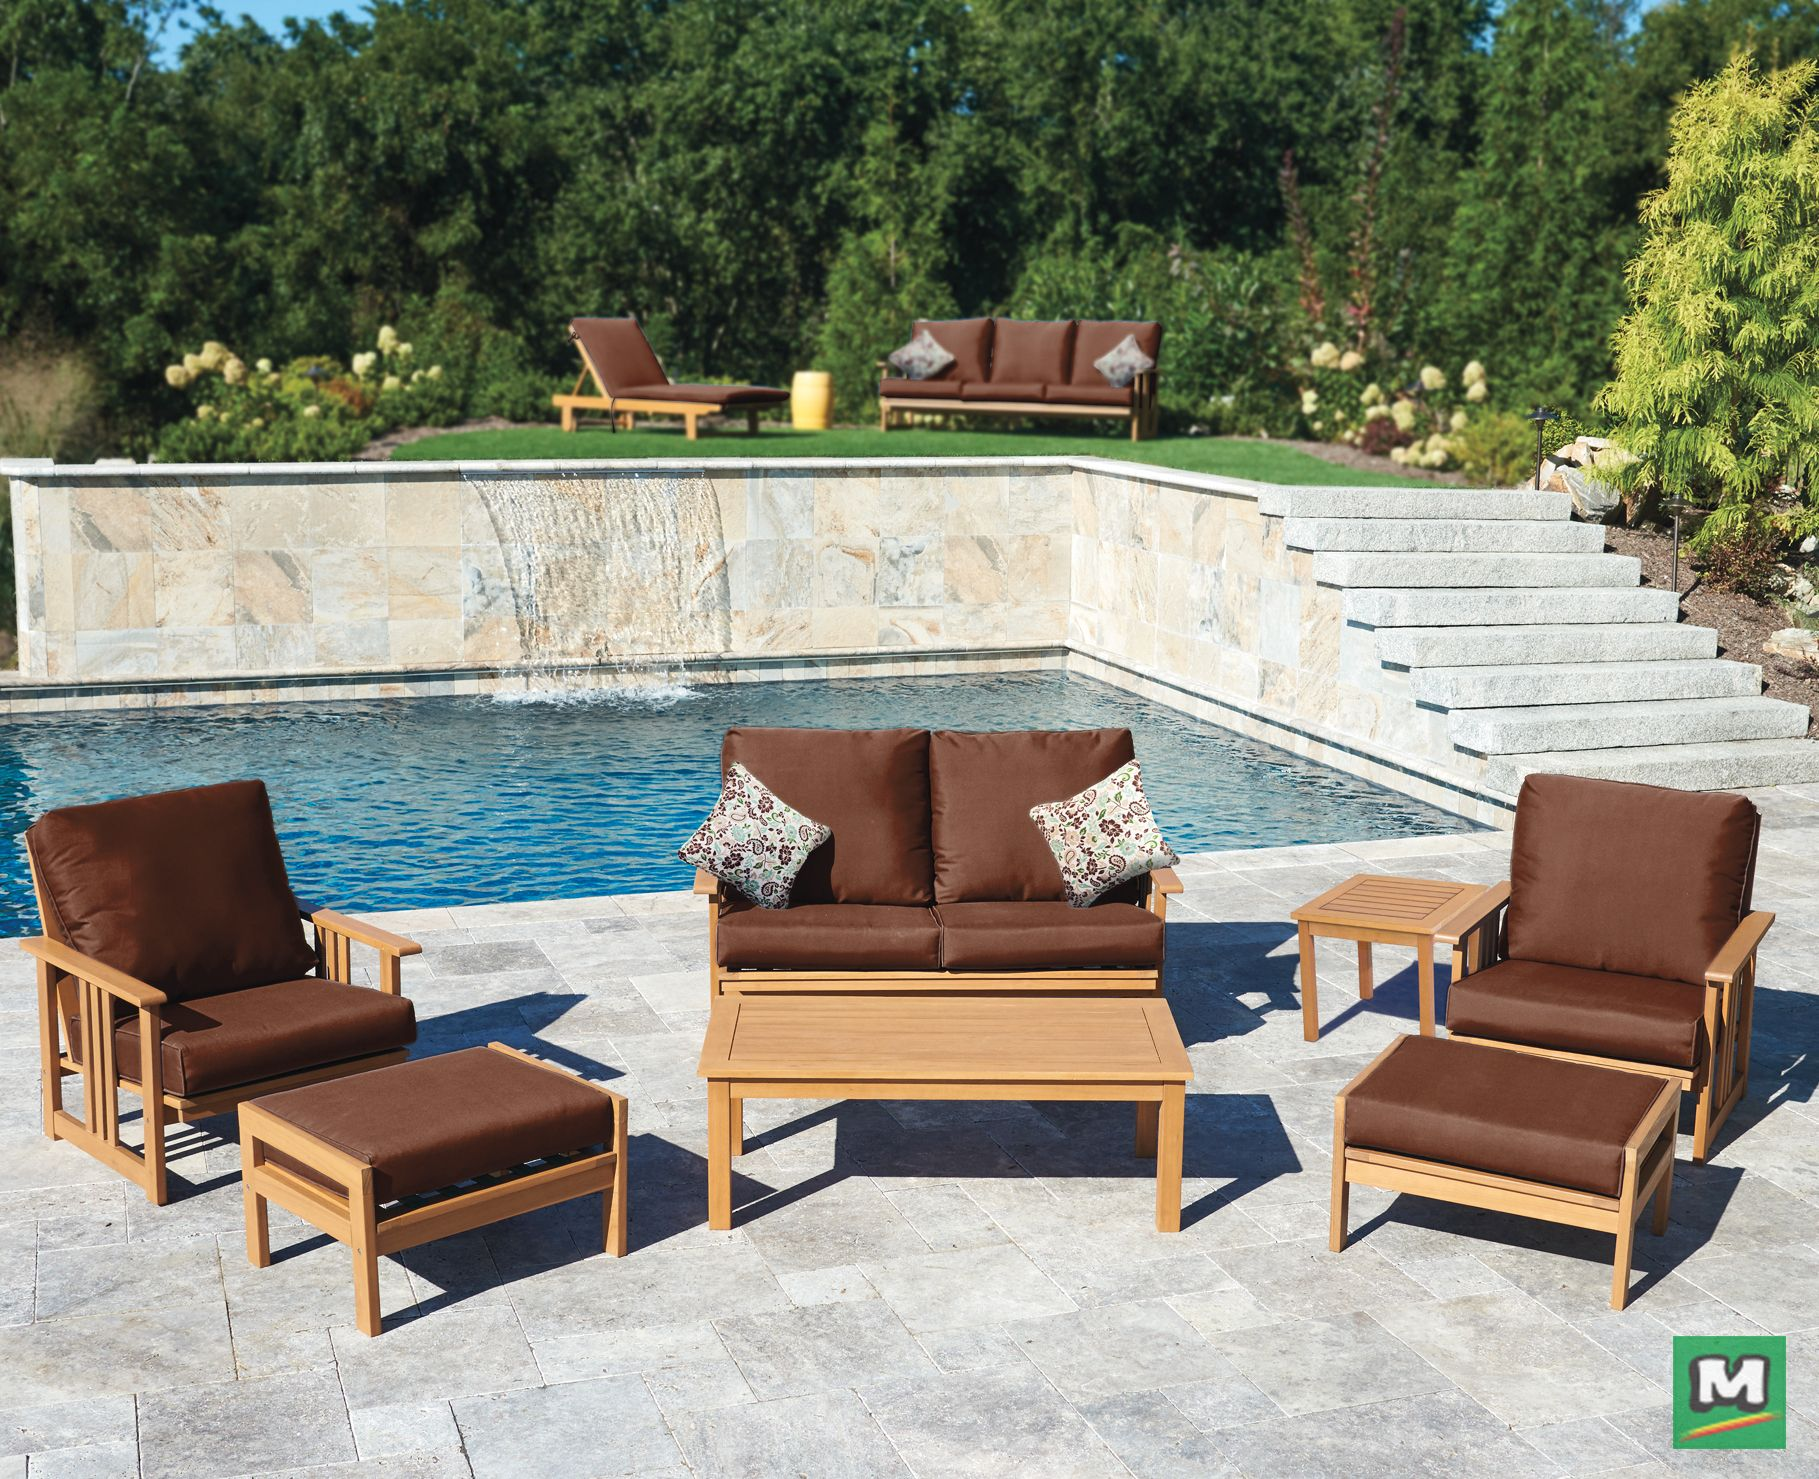 Beautifully Designed The Bayfield 7 Piece Deep Seating Collection Is Made From Outdoor Re Patio Furniture Collection Outdoor Furniture Sets Backyard Creations